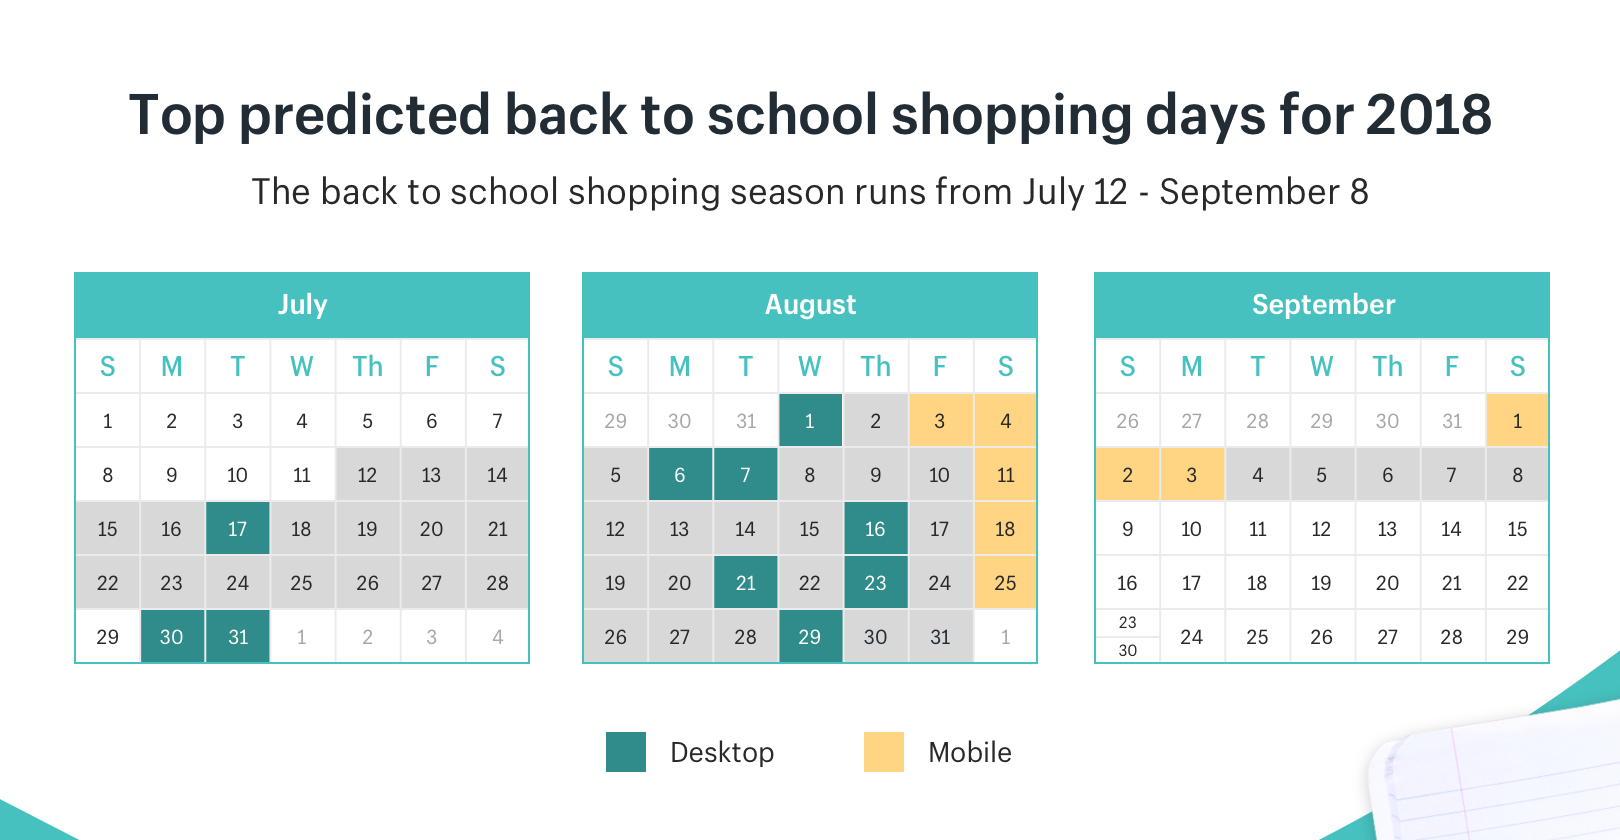 Top predicted back to school shopping days